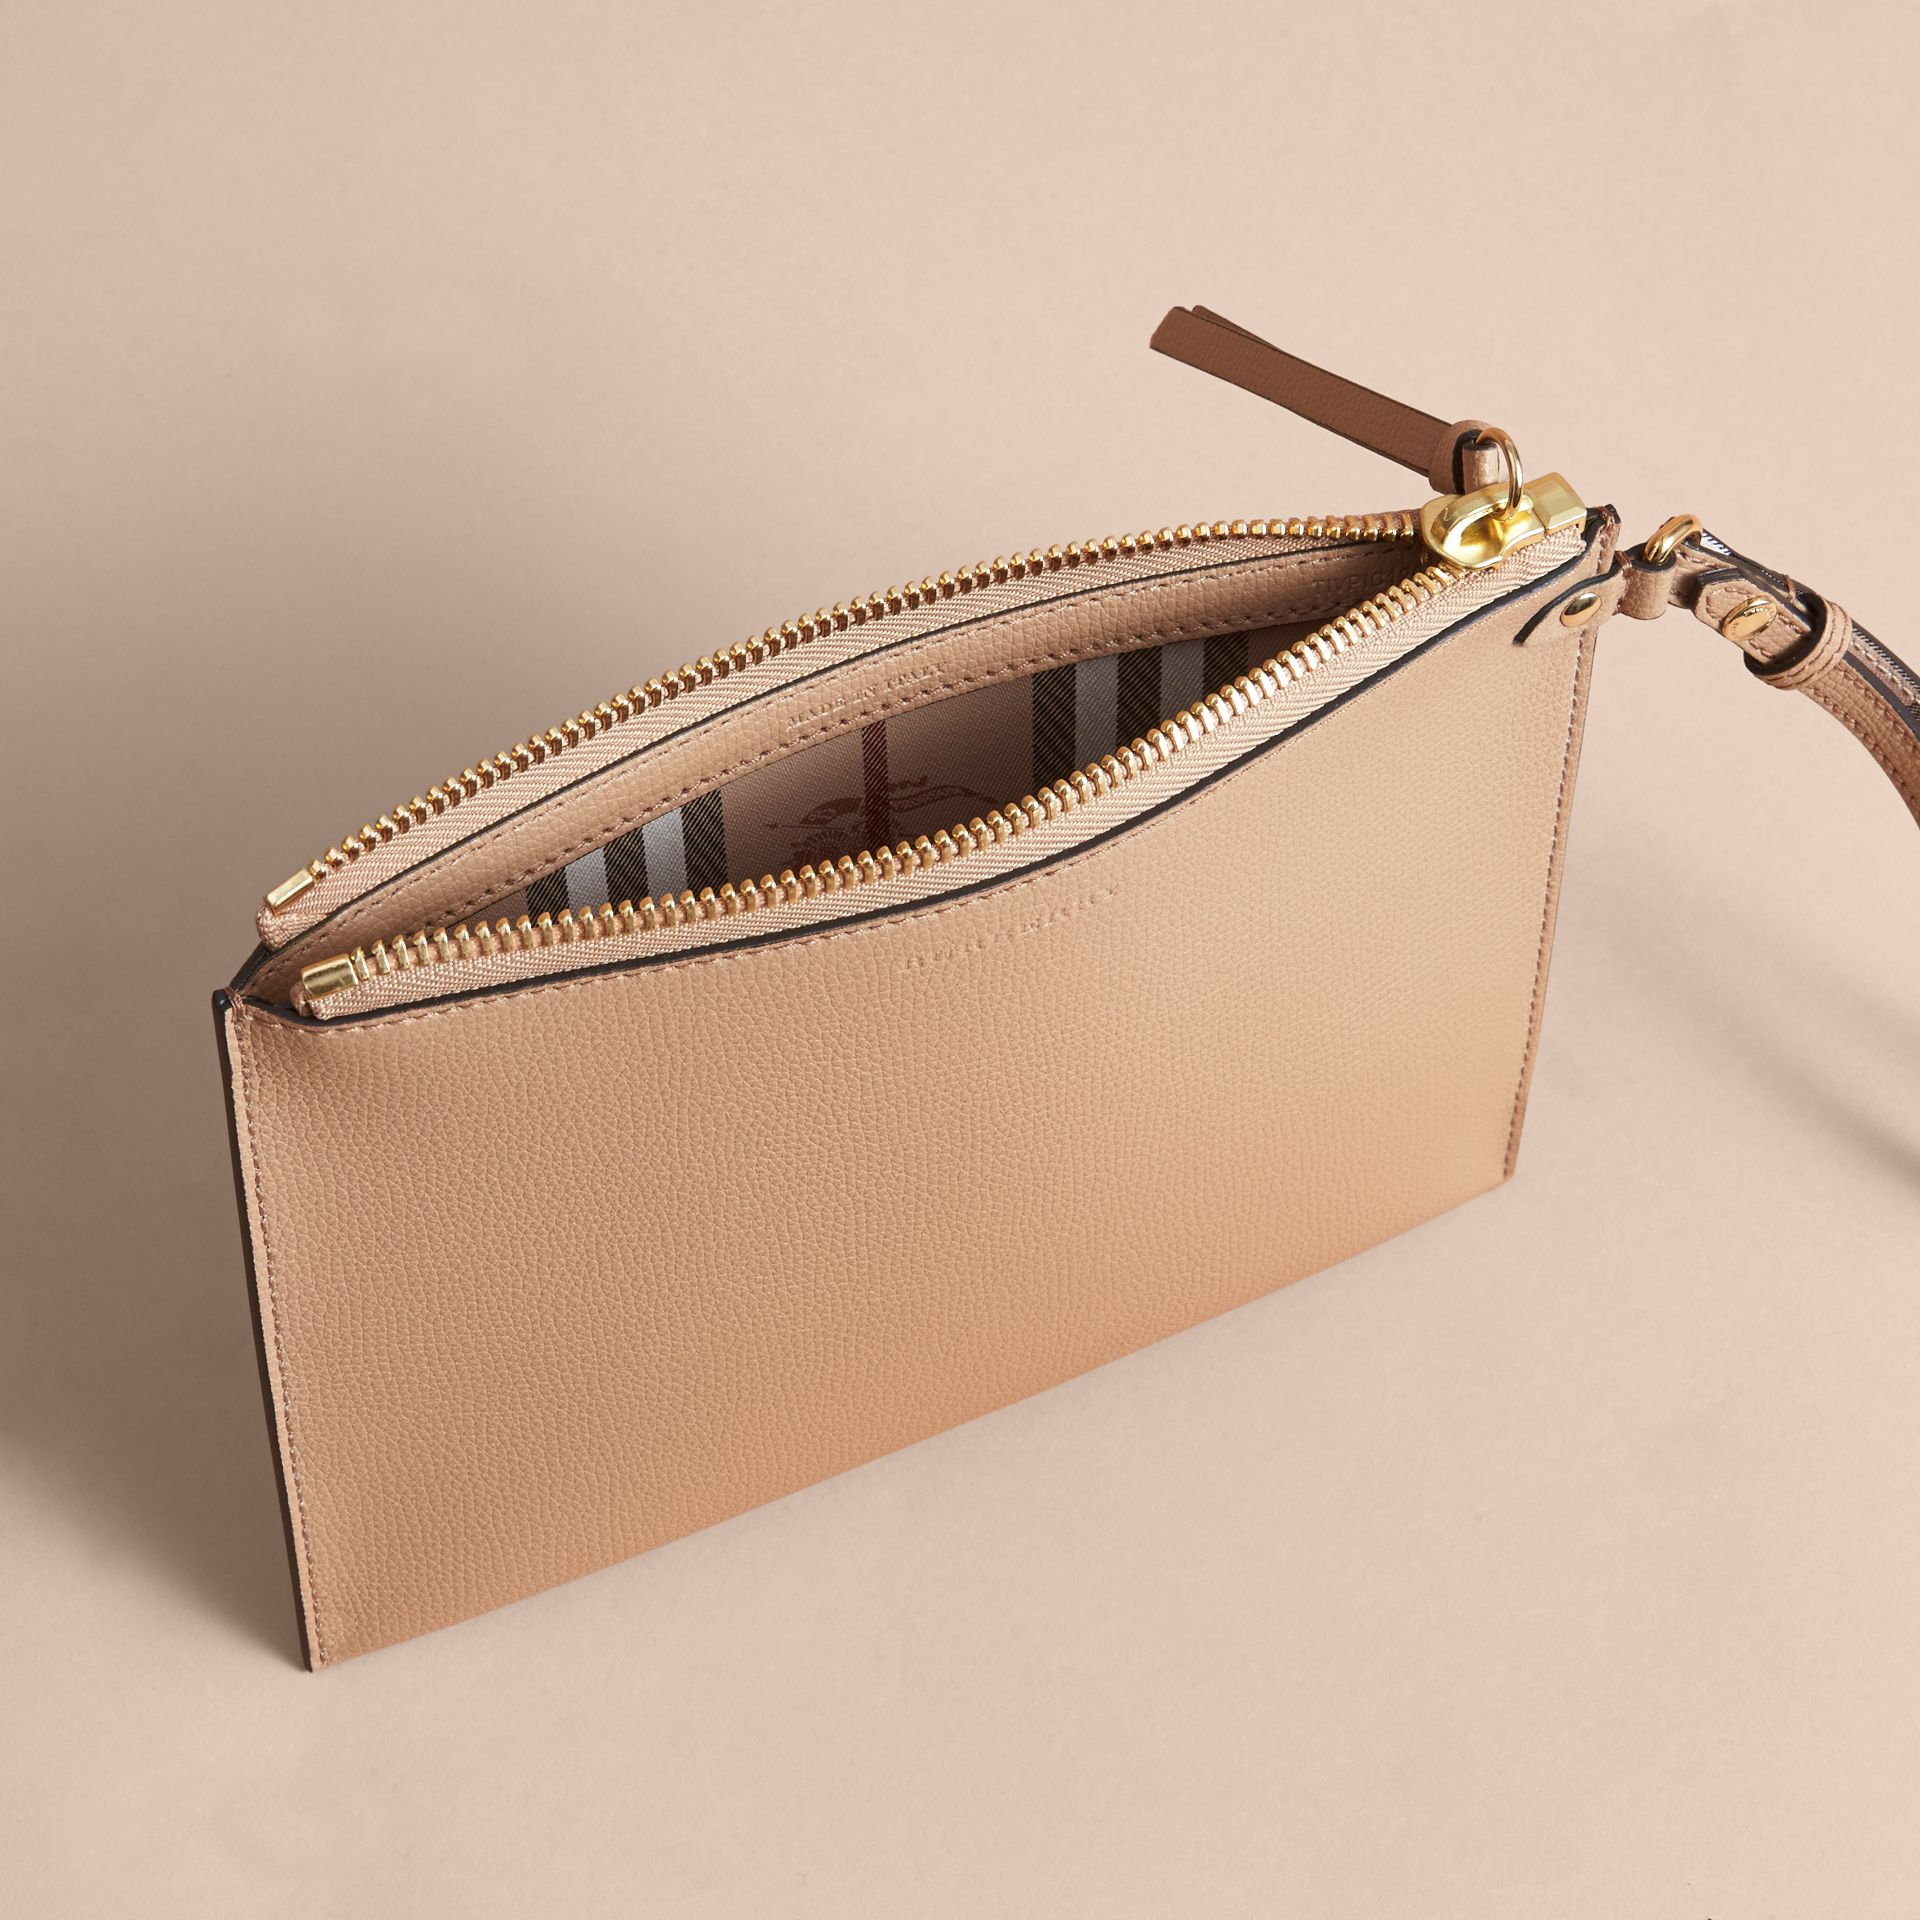 Haymarket Check and Leather Pouch in Mid Camel - Women | Burberry - gallery image 5